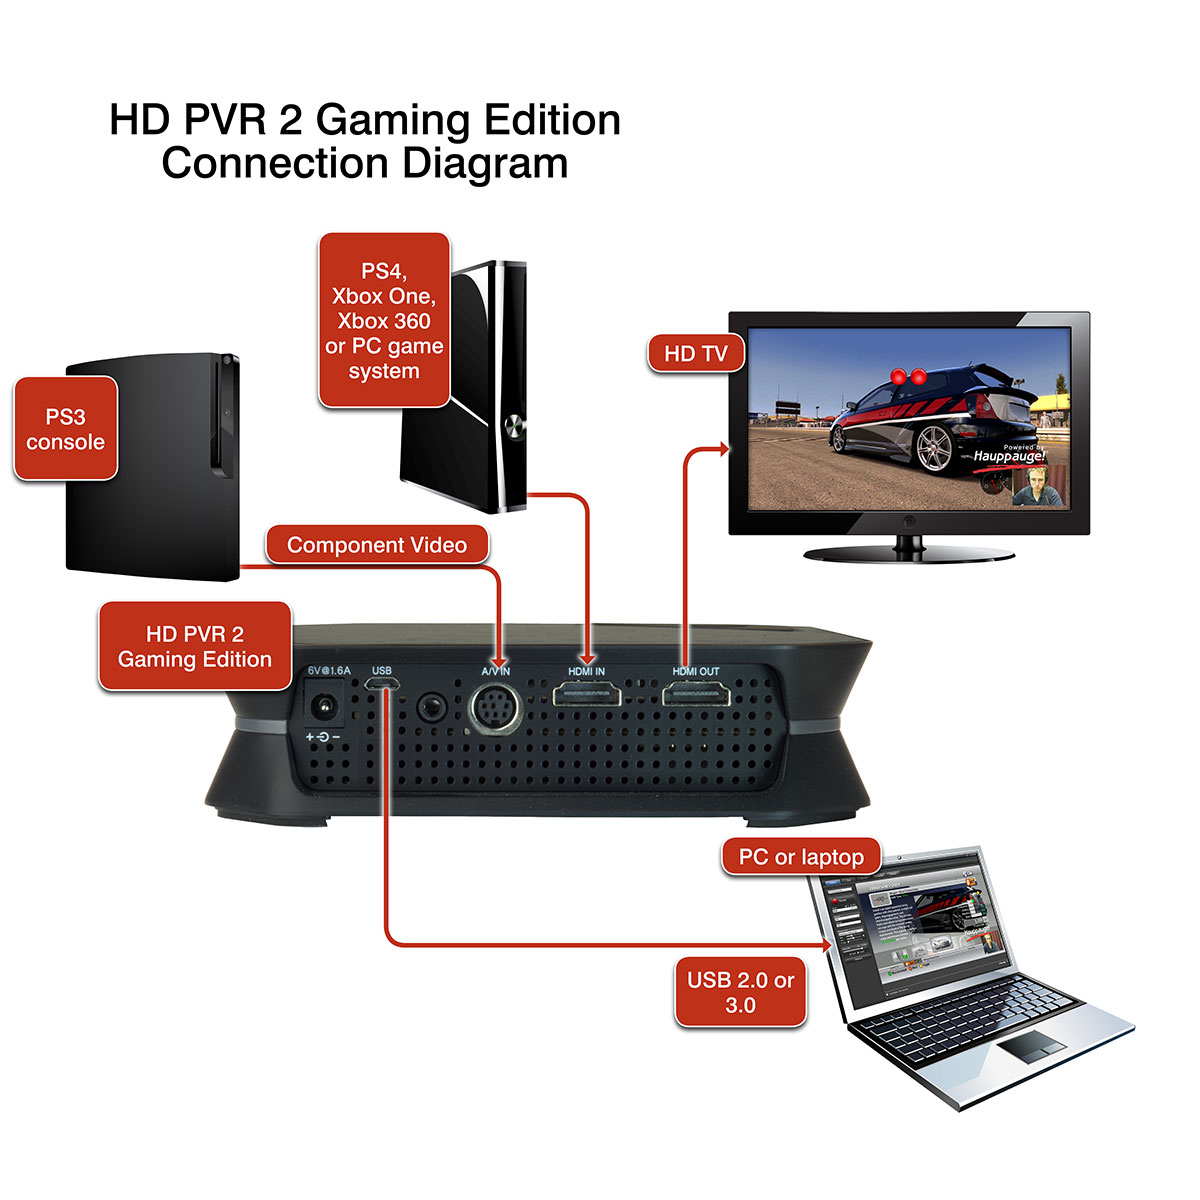 Hauppauge Hd Pvr 2 Gaming Edition Product Description Schematic Diagrams Mp3 Player Circuit Board Rev A Images Frompo Image